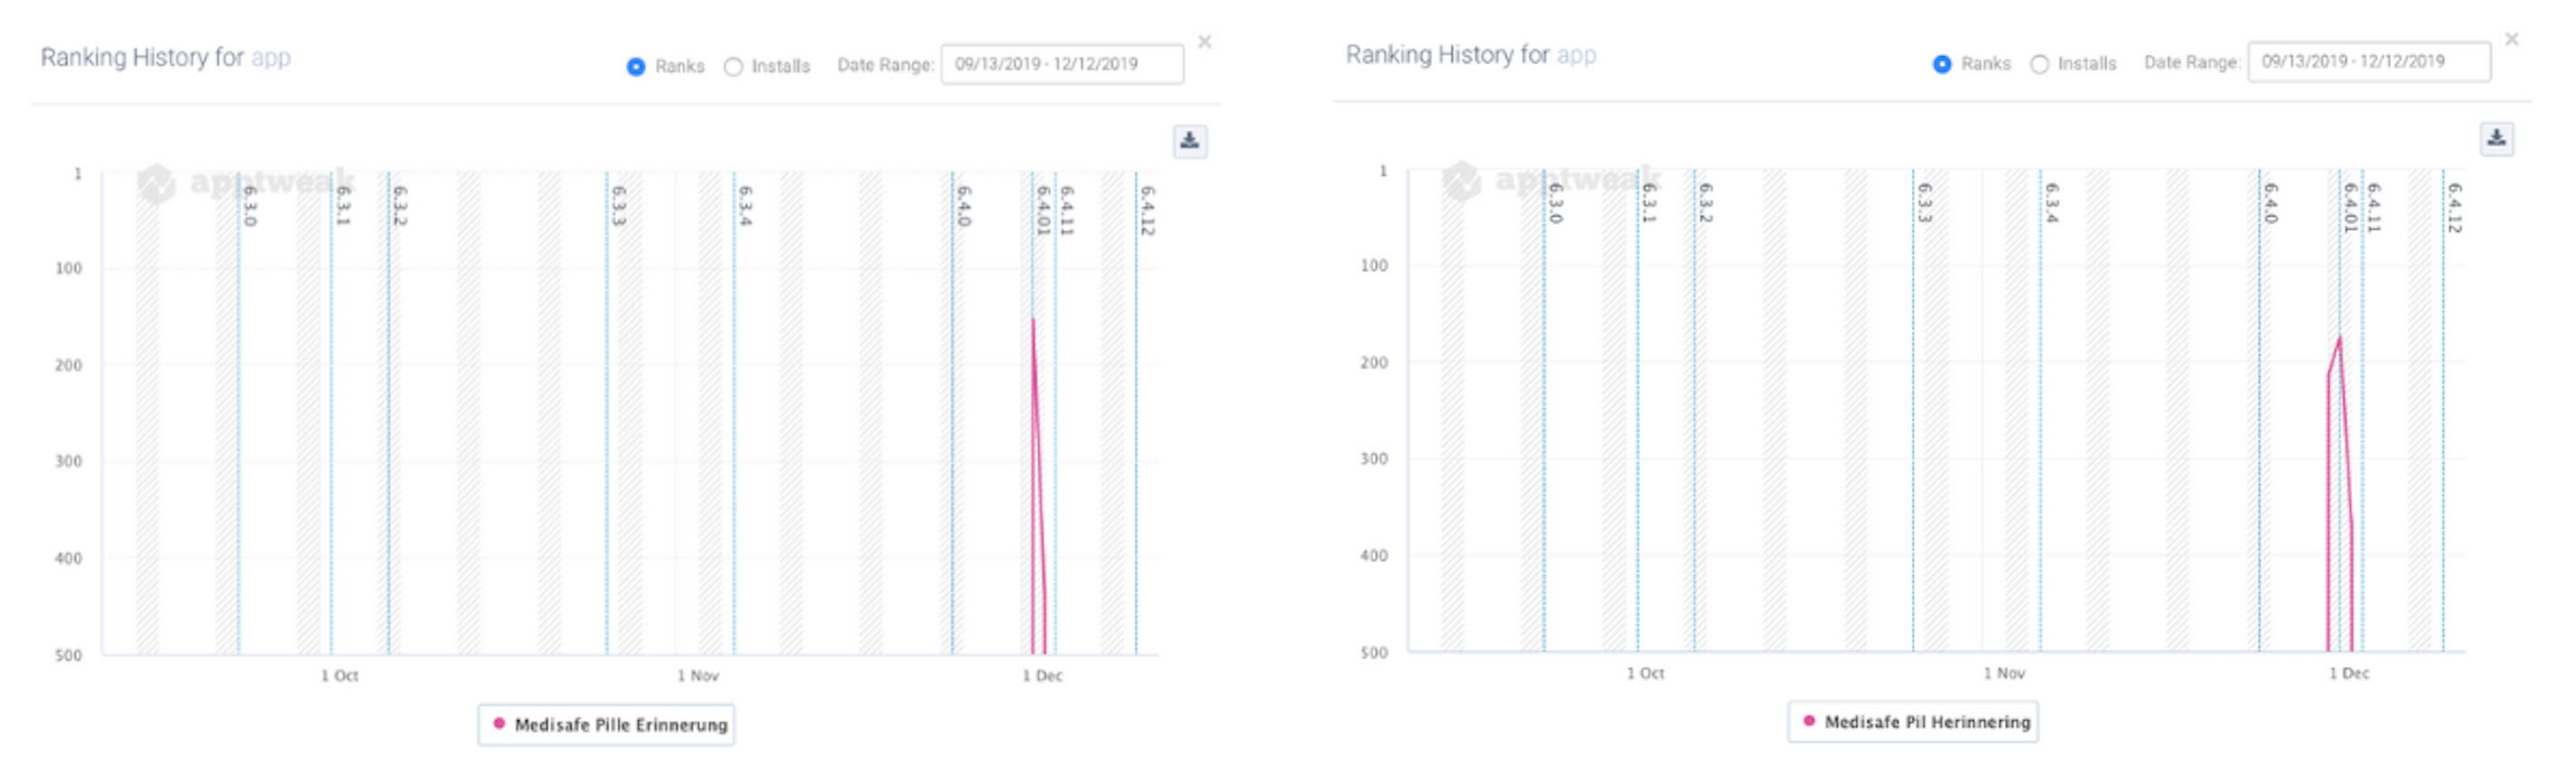 Ranking history for the keyword 'app' in Germany and the Netherlands.